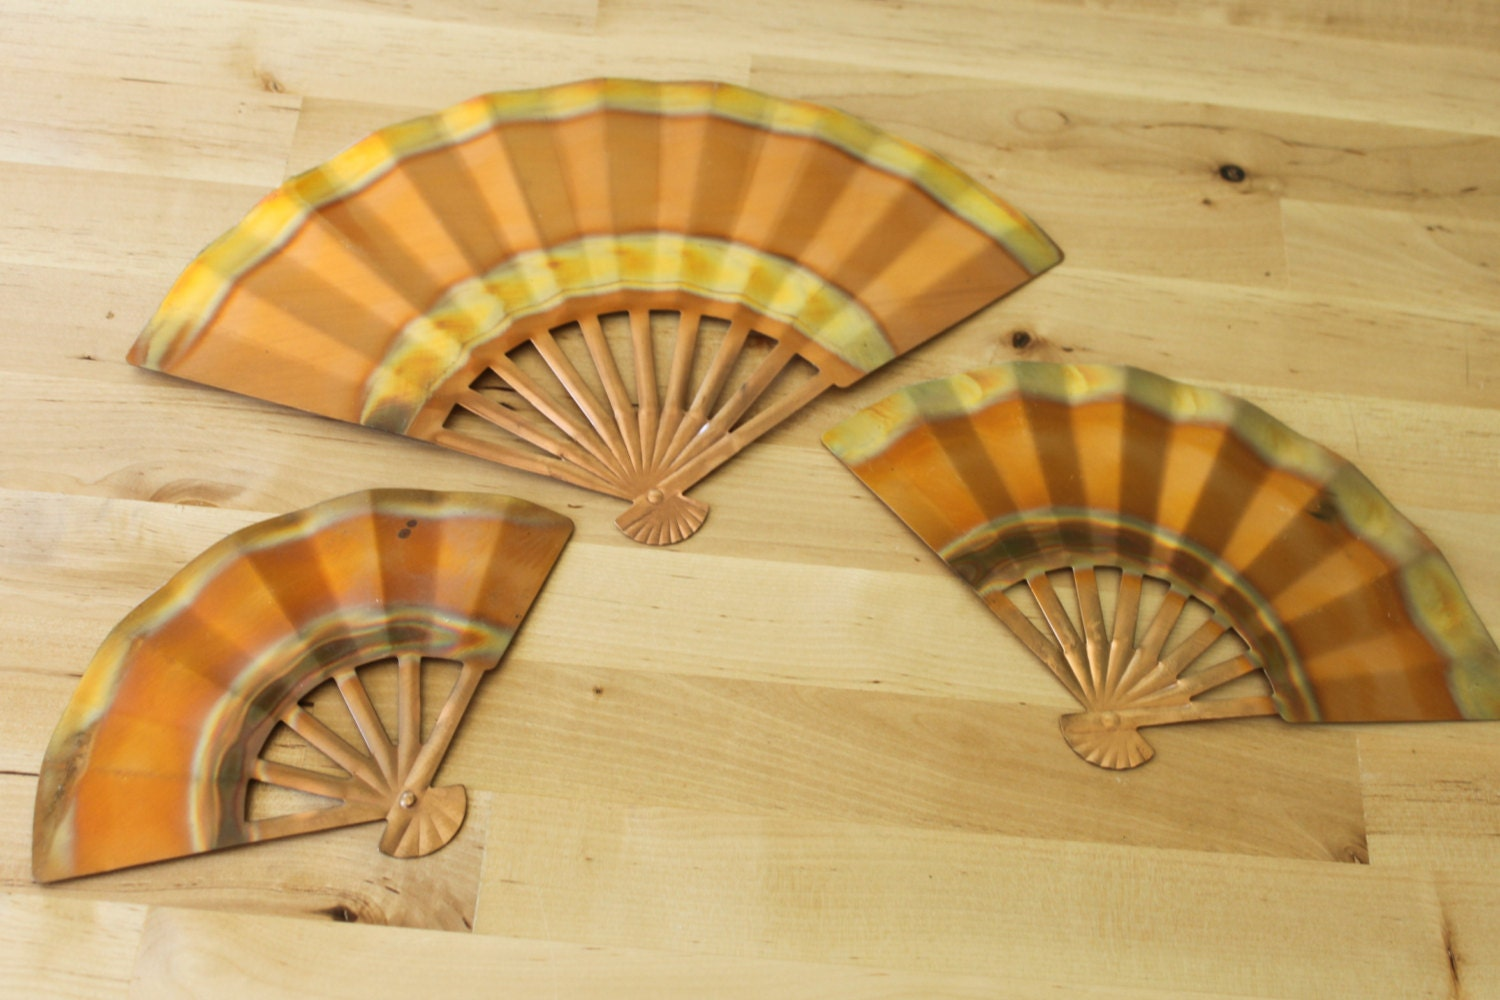 Famous Decorative Fans For Walls Pictures Inspiration - The Wall ...